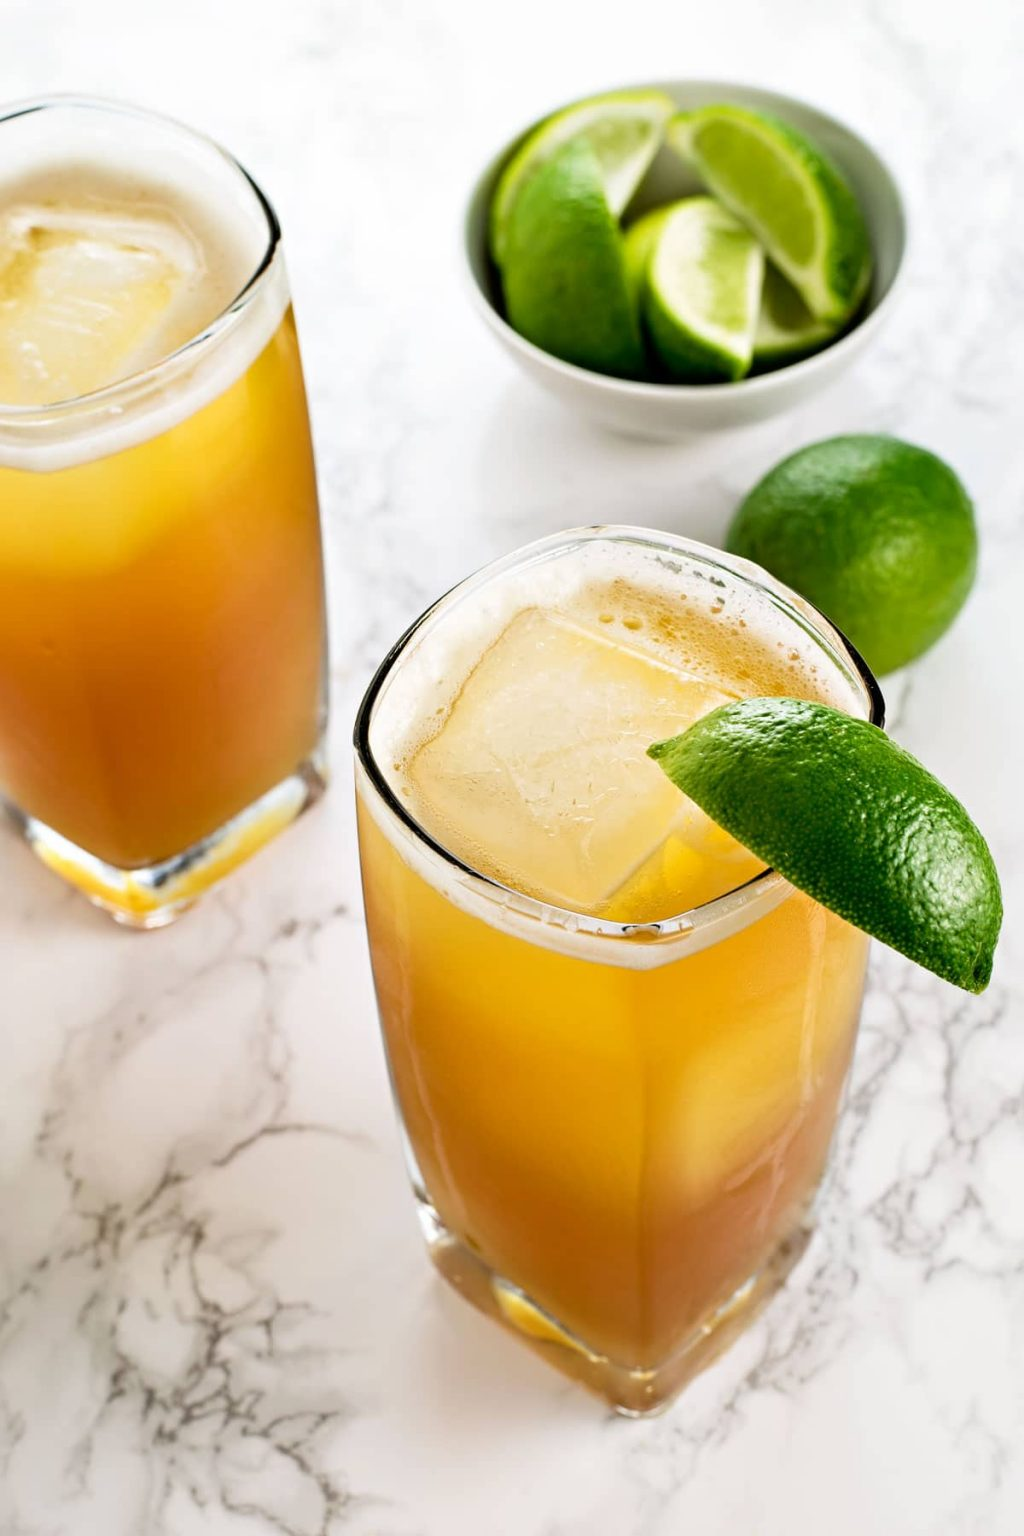 A glass filled with an orange mixed drink with ice, garnished with a lime wedge